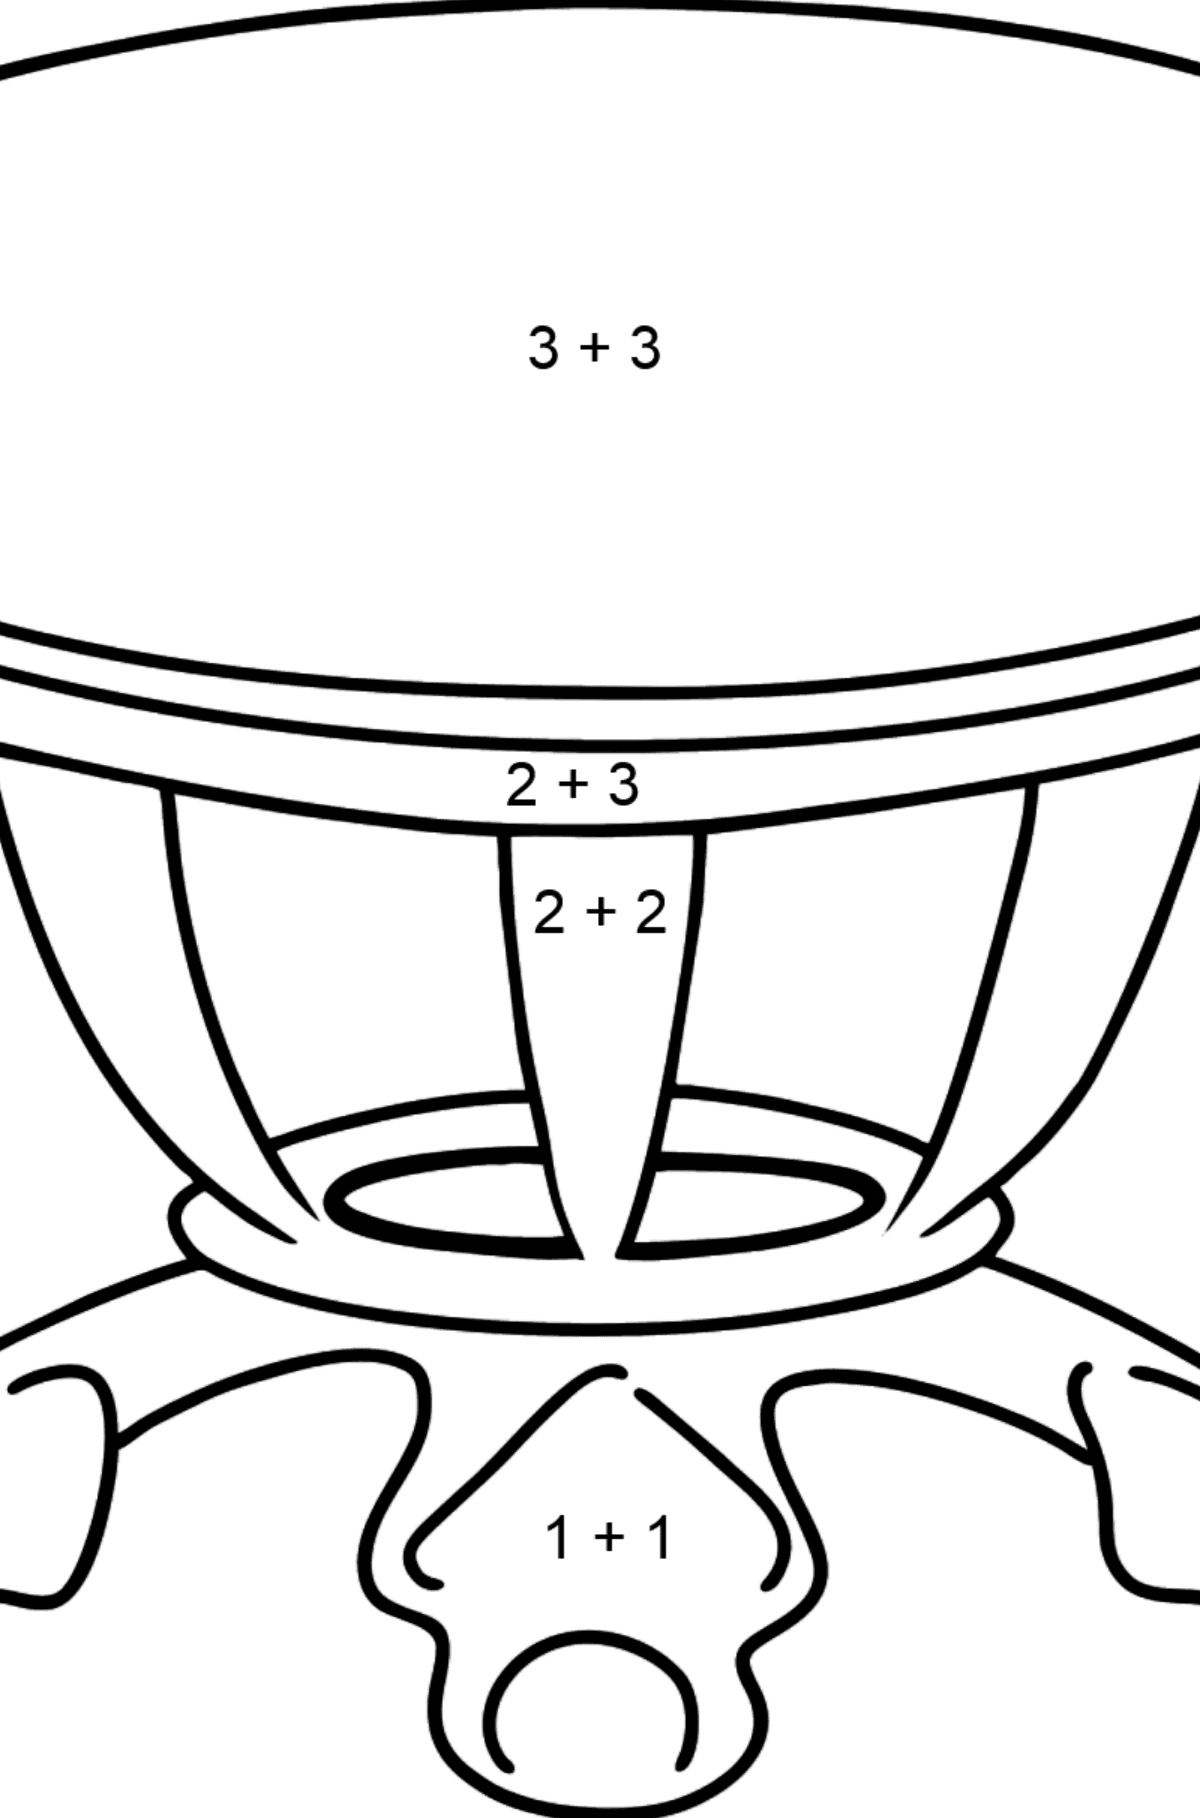 Dining Table coloring page - Math Coloring - Addition for Kids